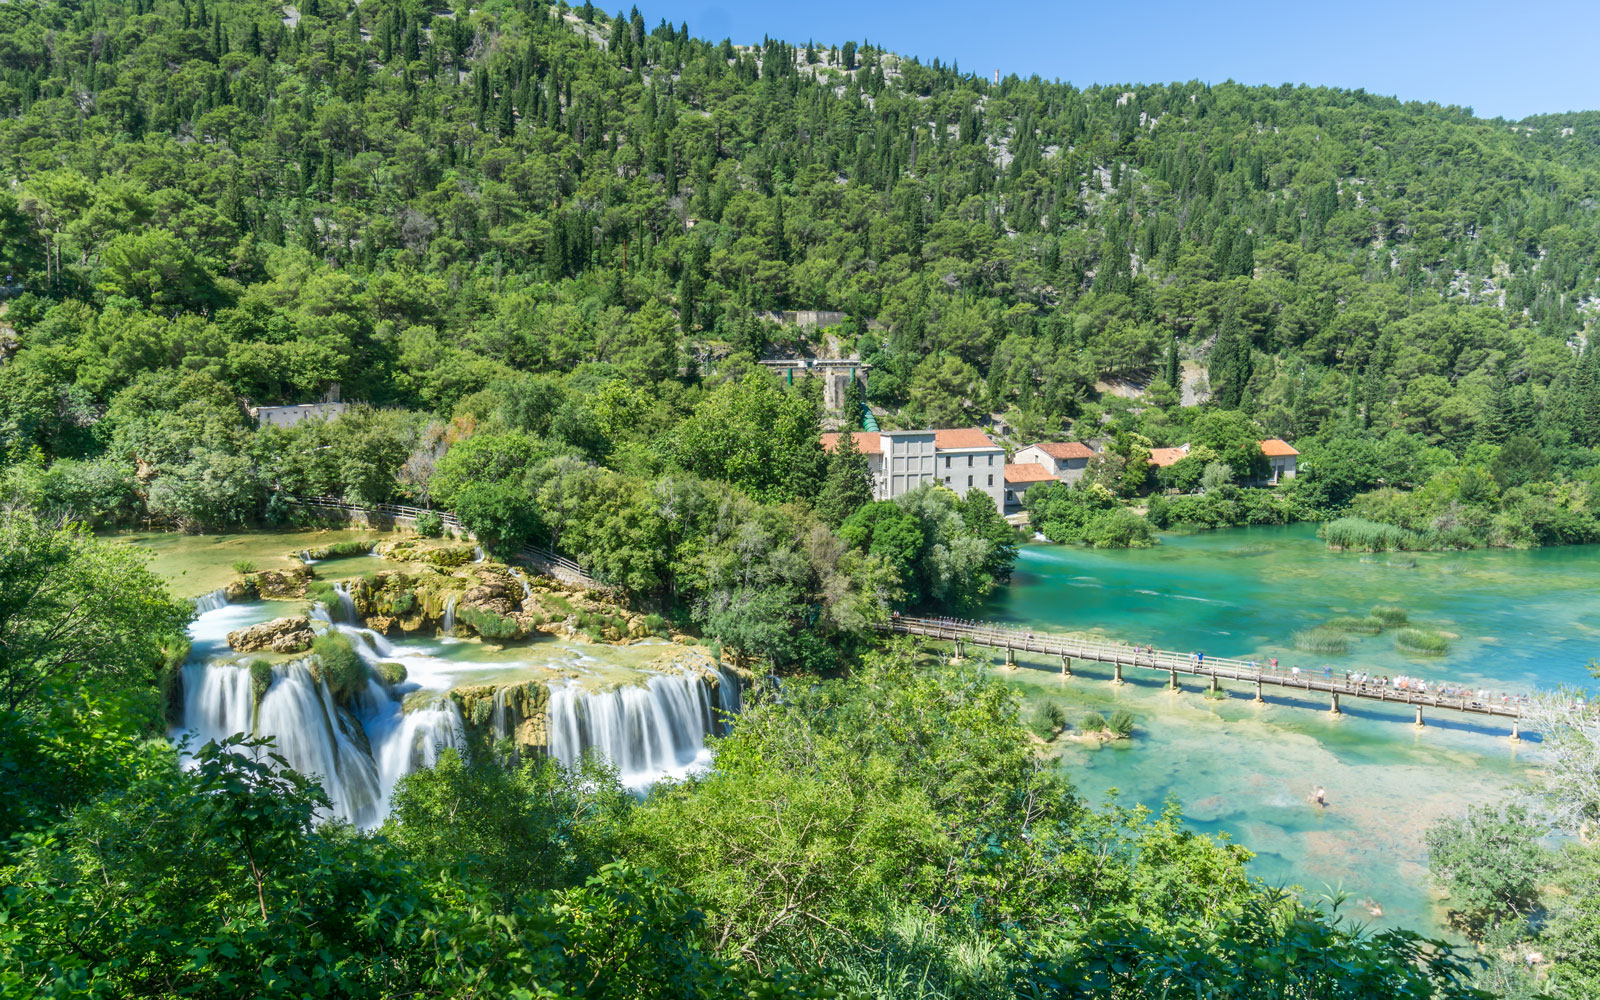 This waterfall in Croatia is attracting so many tourists, there's a new cap on visitors